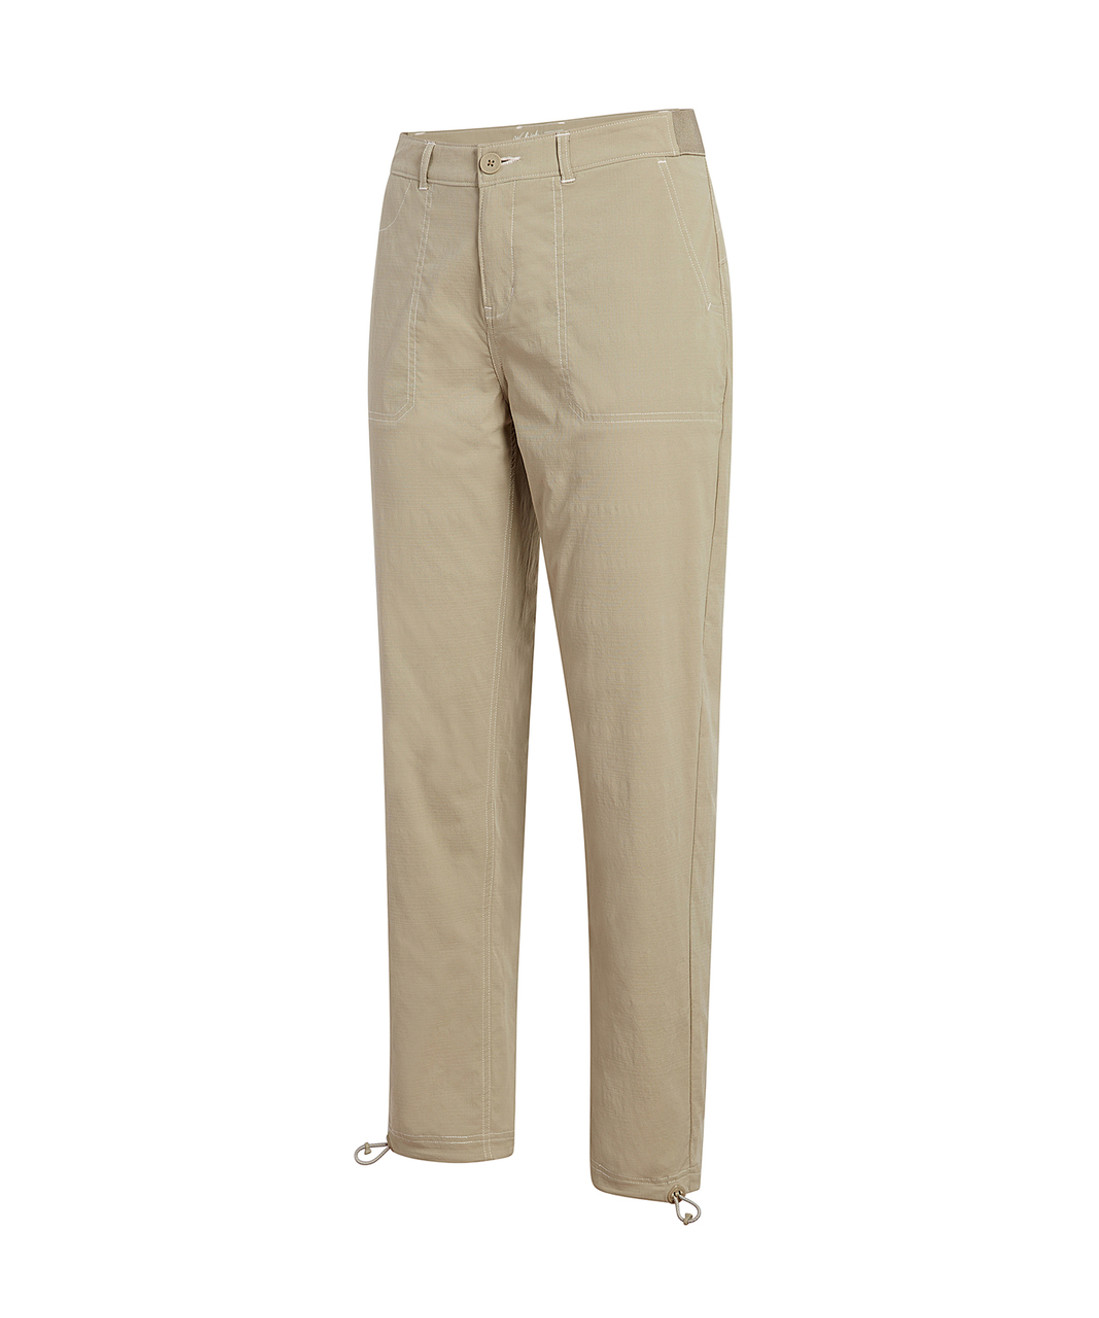 Women's Trail Time Ankle Stretch Ripstop Pants